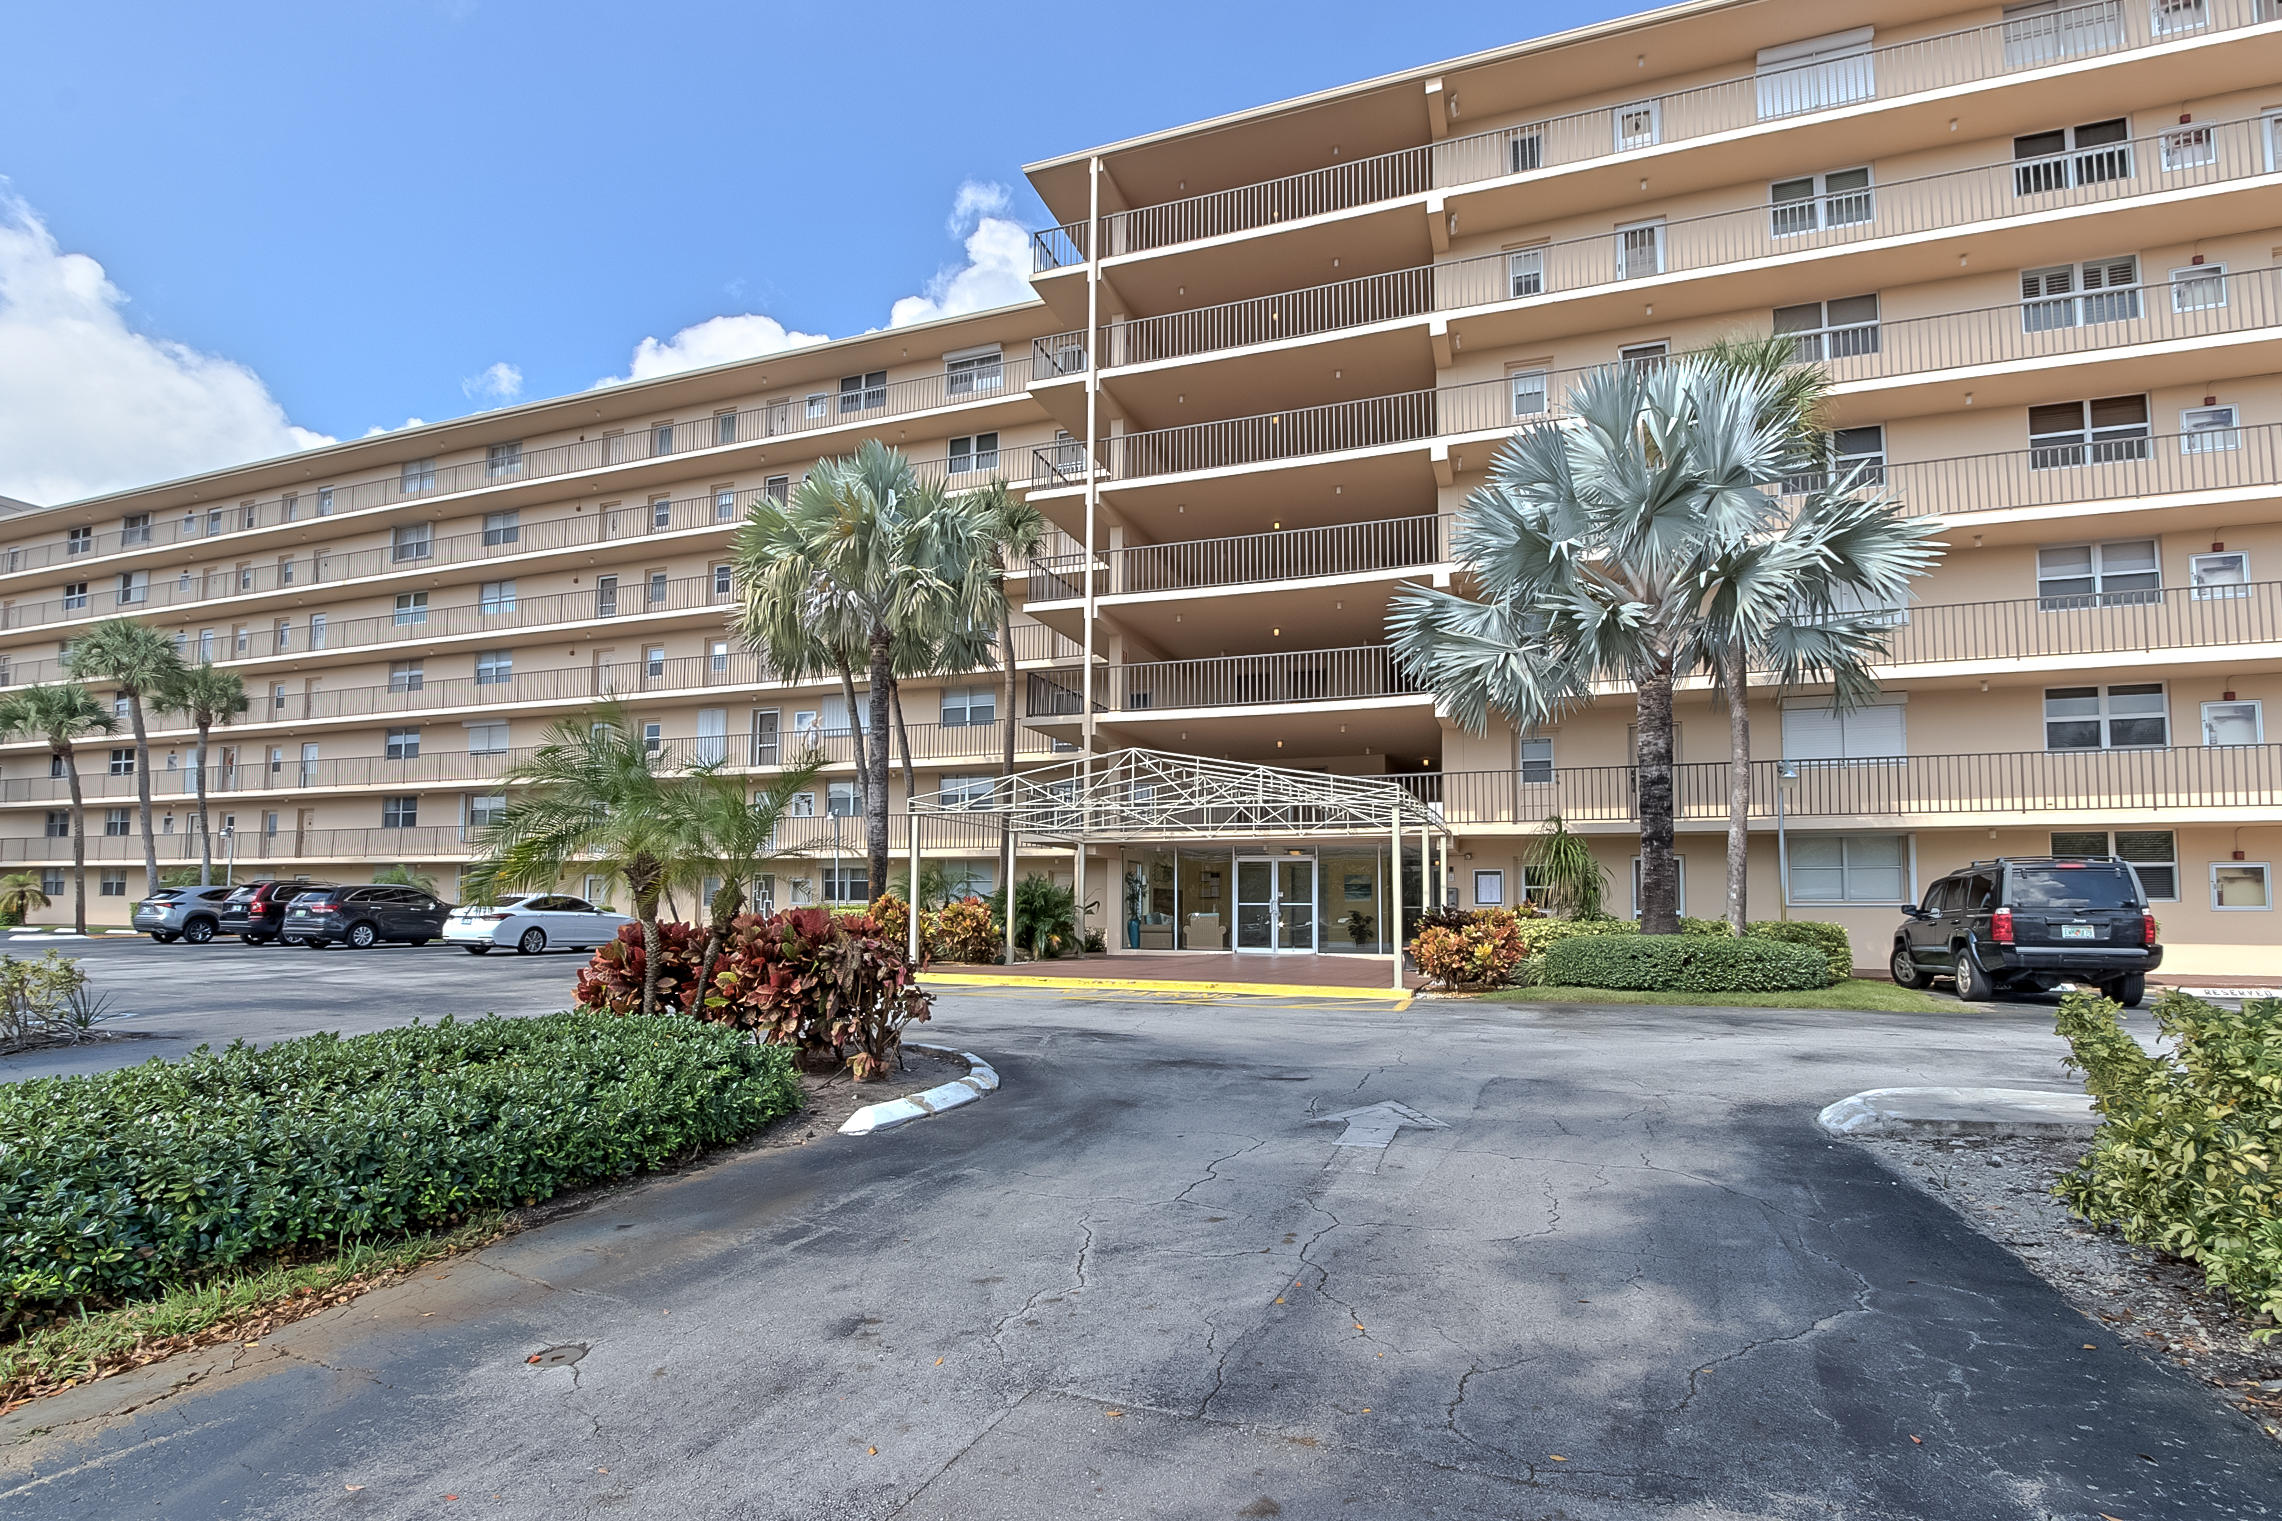 Priced to sell! Great Opportunity for a corner Penthouse unit east Boca Raton, close to the beach. Feature hurricane impact windows with a peaceful and private patio, great view of the city, golf with a touch of the ocean view. Wood floors, upgraded kitchen... Don't miss it.